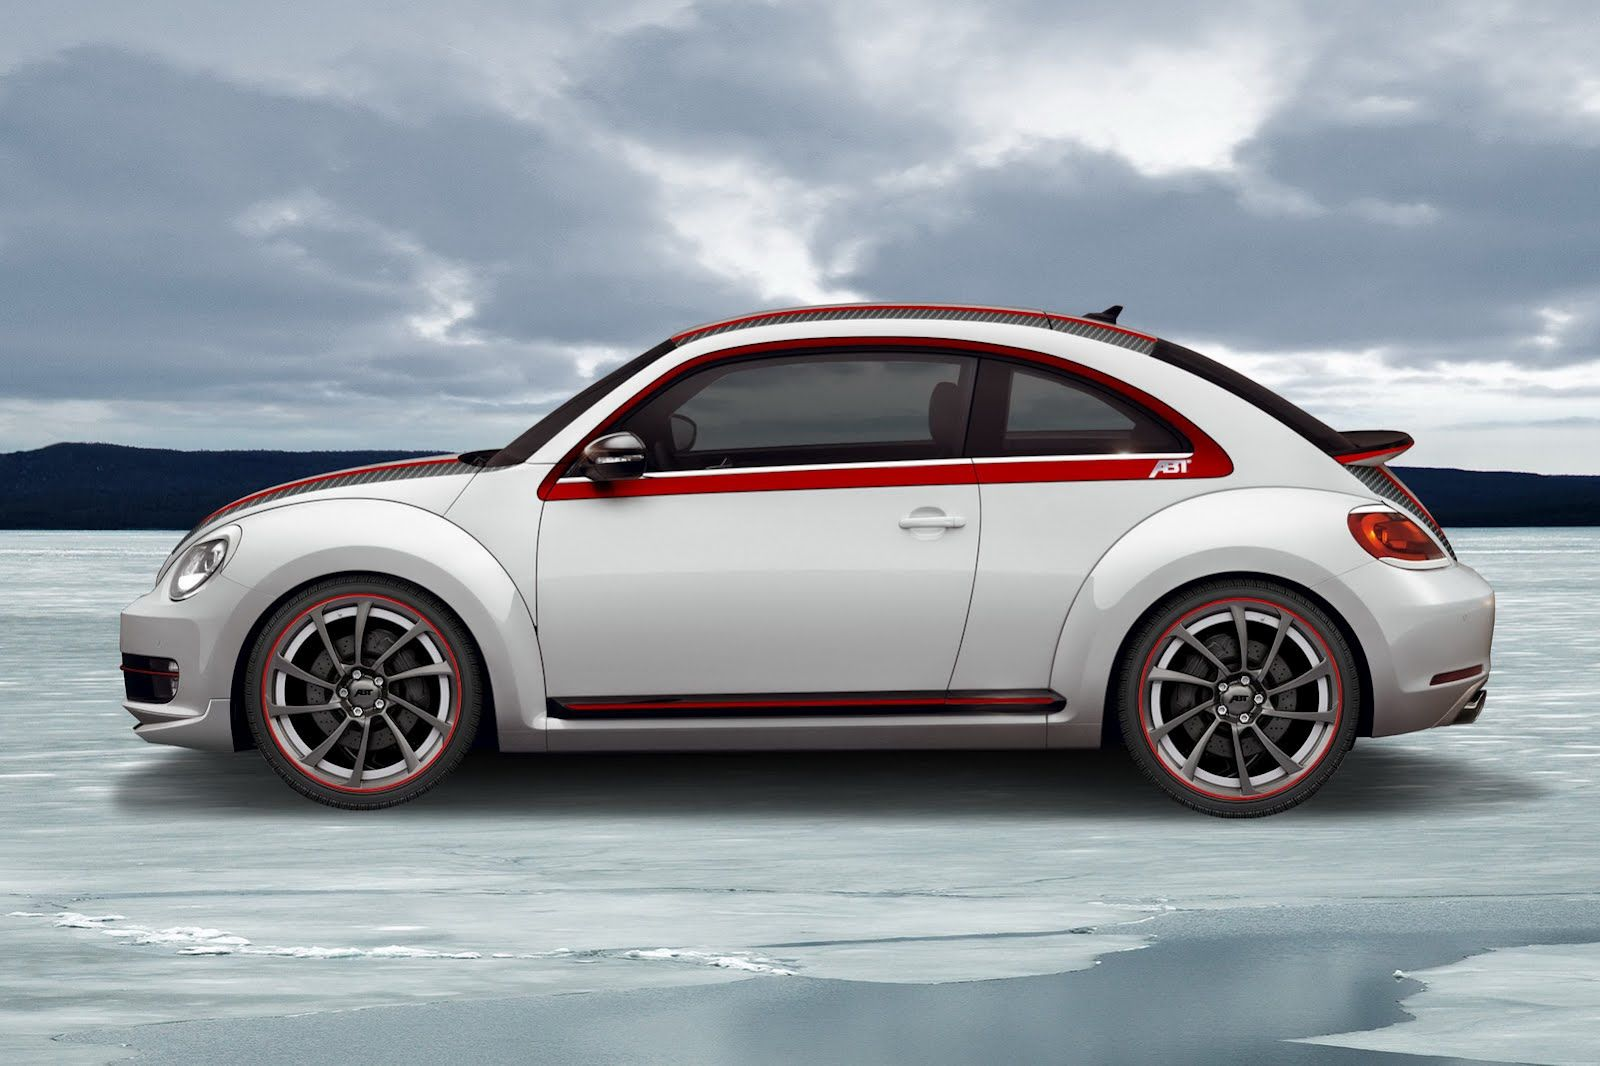 Abt Launches Tuning Program For New 2012 Volkswagen Beetle Carscoops In 2020 Volkswagen Beetle Volkswagen New Beetle Volkswagen